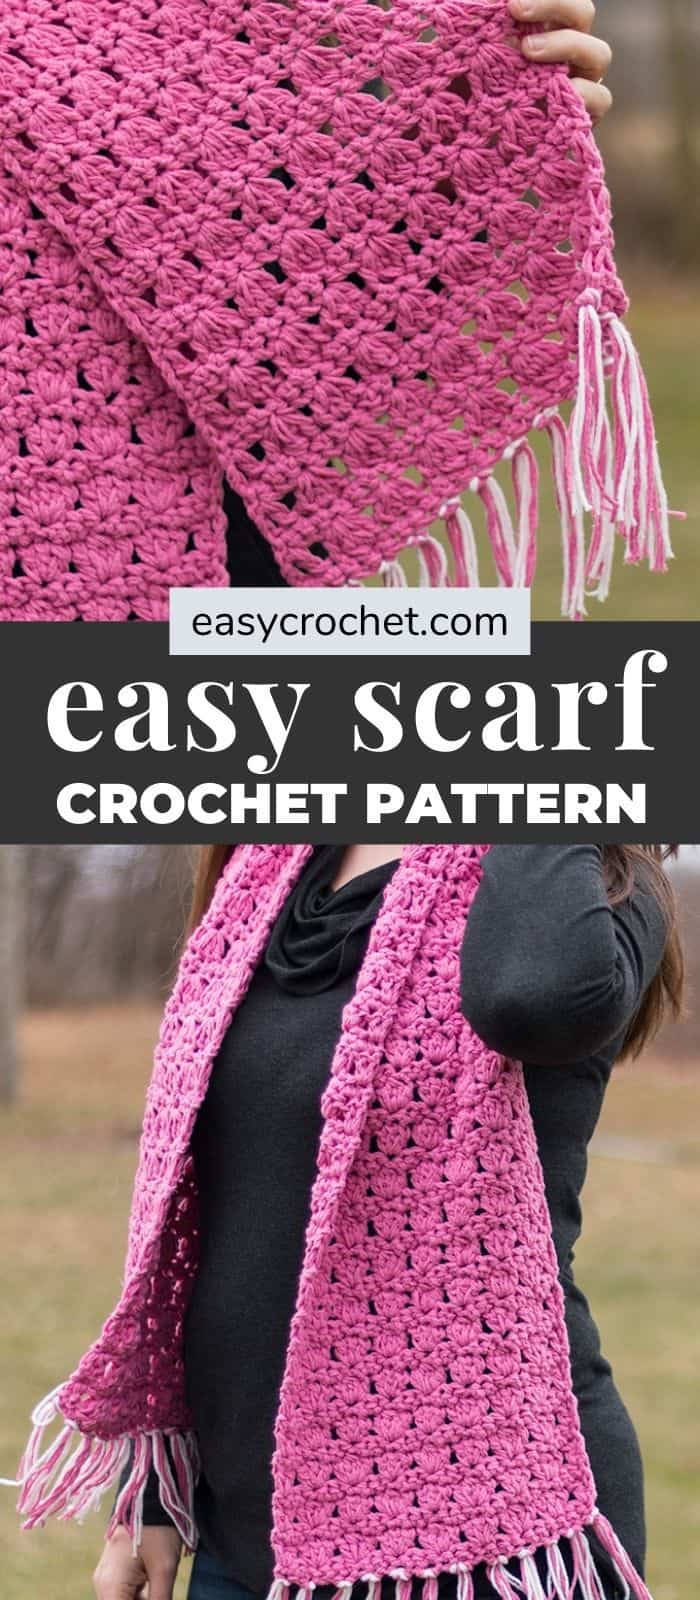 easy pink crochet scarf pattern via @easycrochetcom